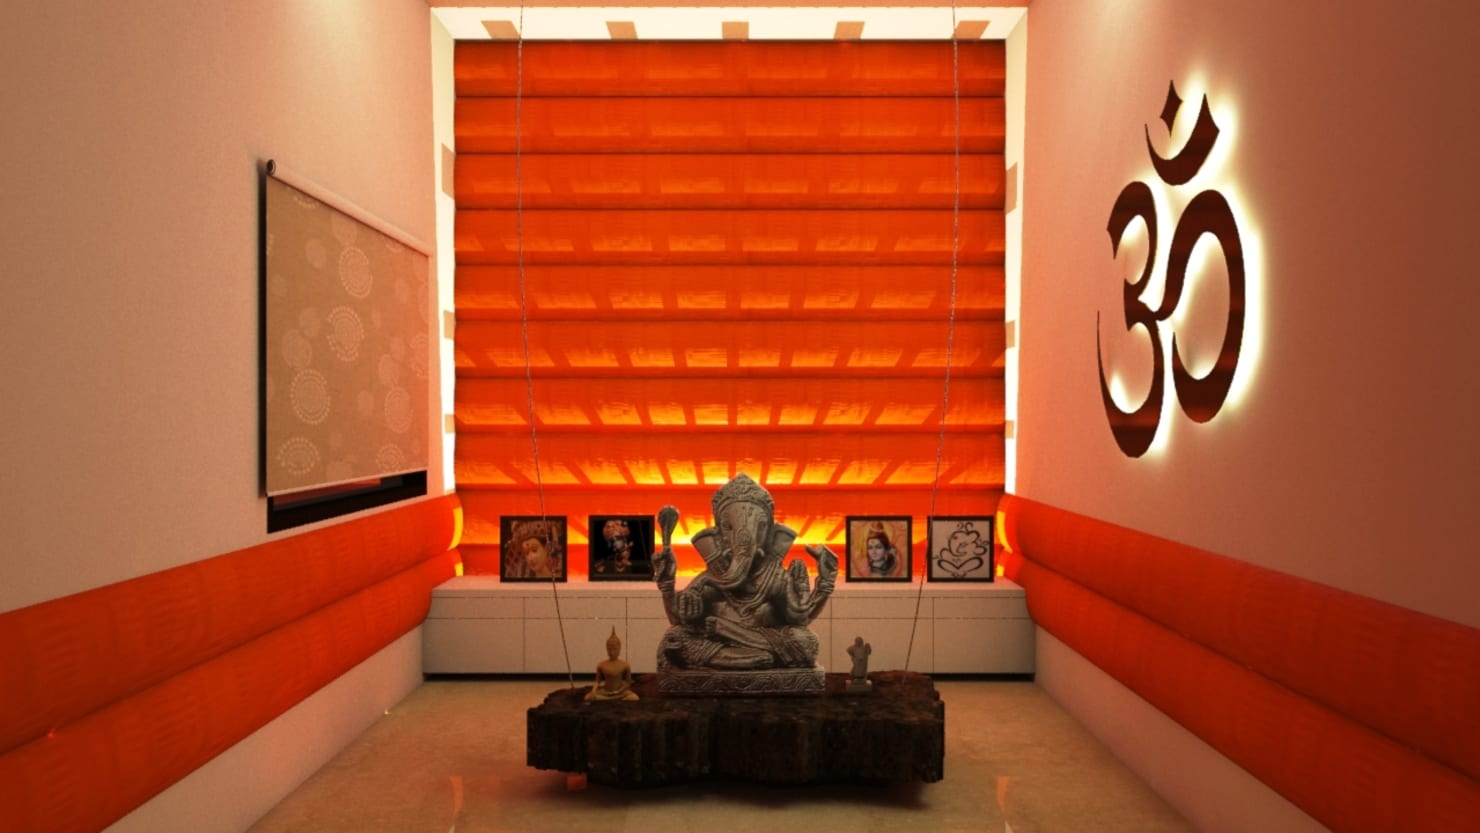 8 Things to consider: dos and don'ts for decorating your home with Ganesha idols